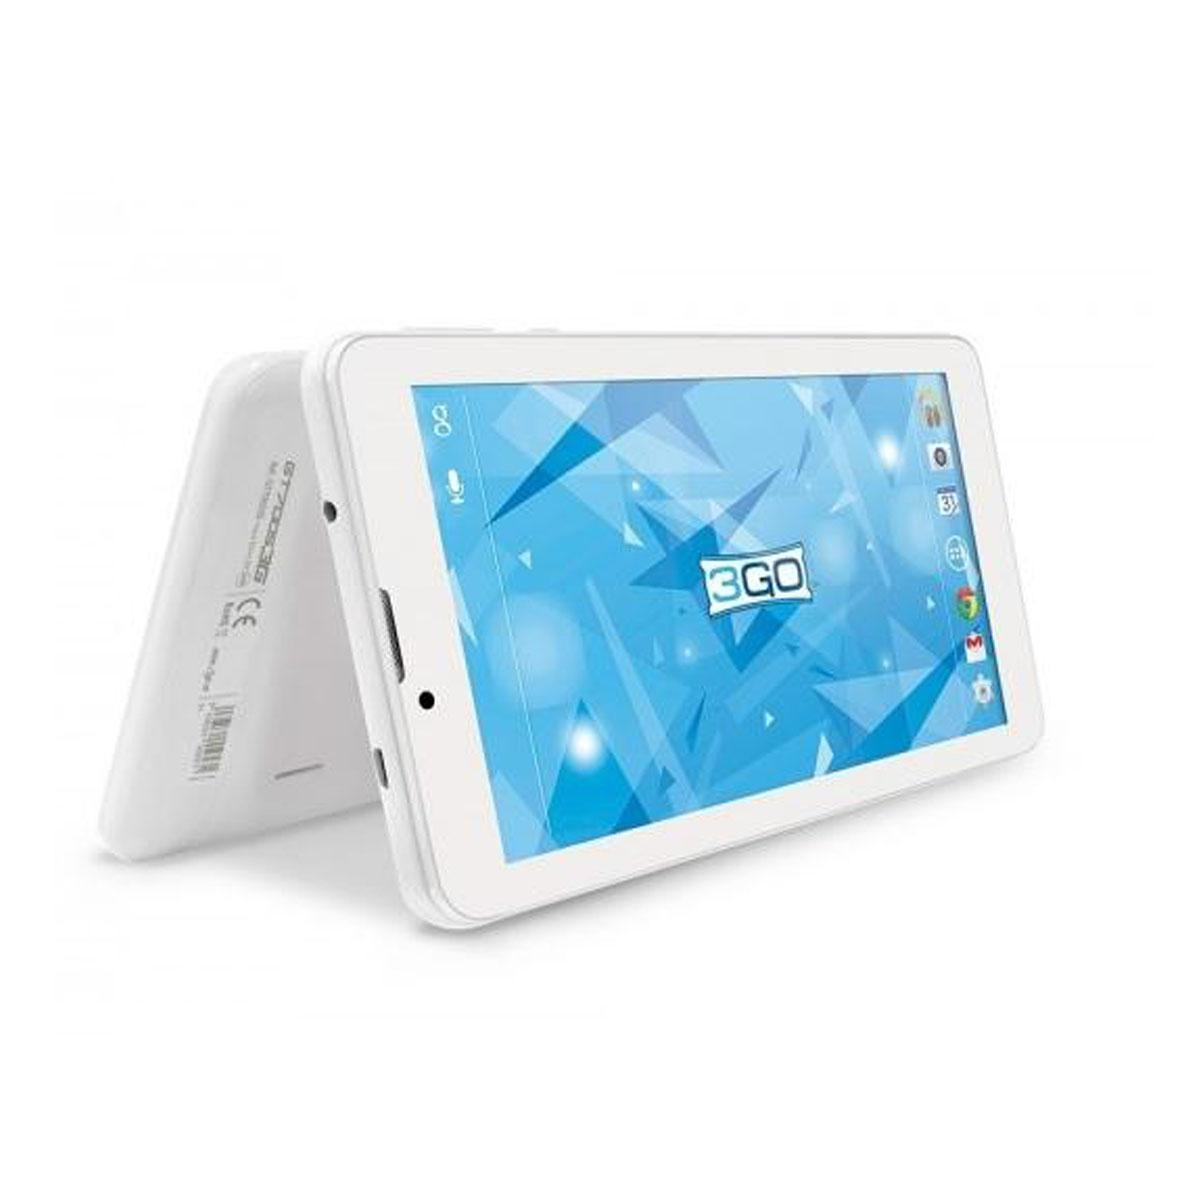 Tablette 7 IPs 3go Gt7005 3G 1024x600 Intel Eco Quad Core 16 GB 1 GB double Cam android 8.1 couleur blanc